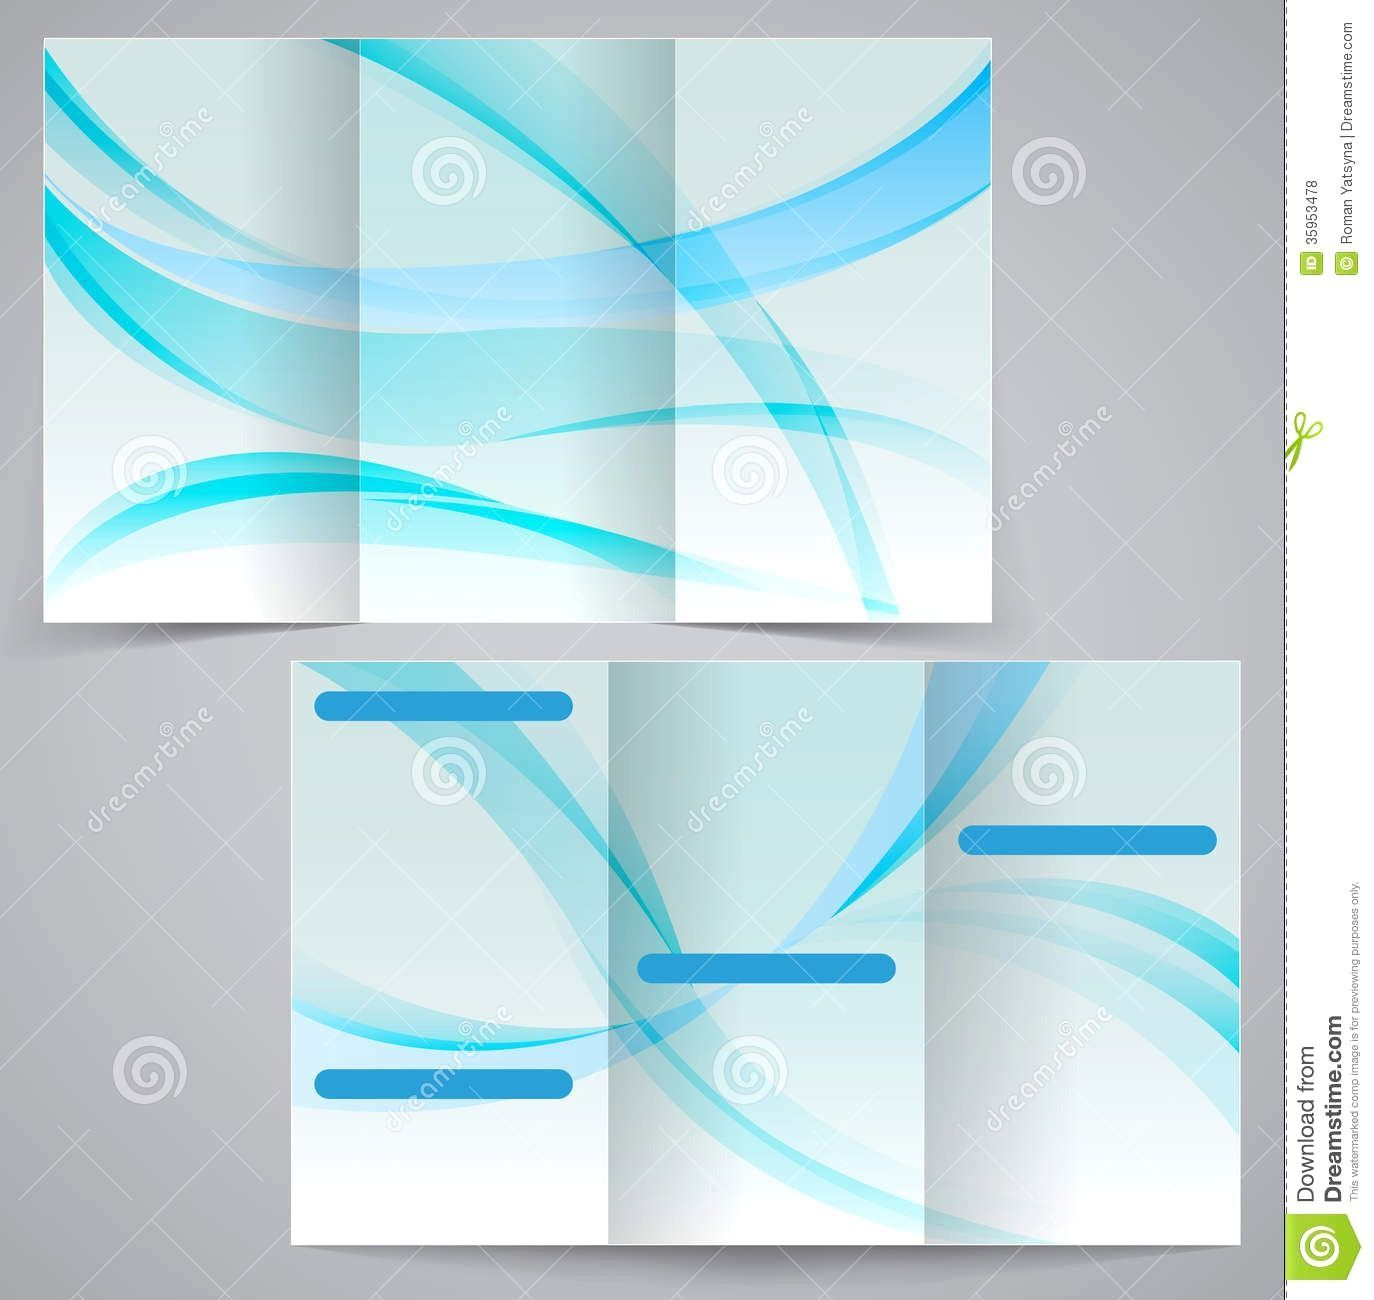 Blank Flyer Background Design